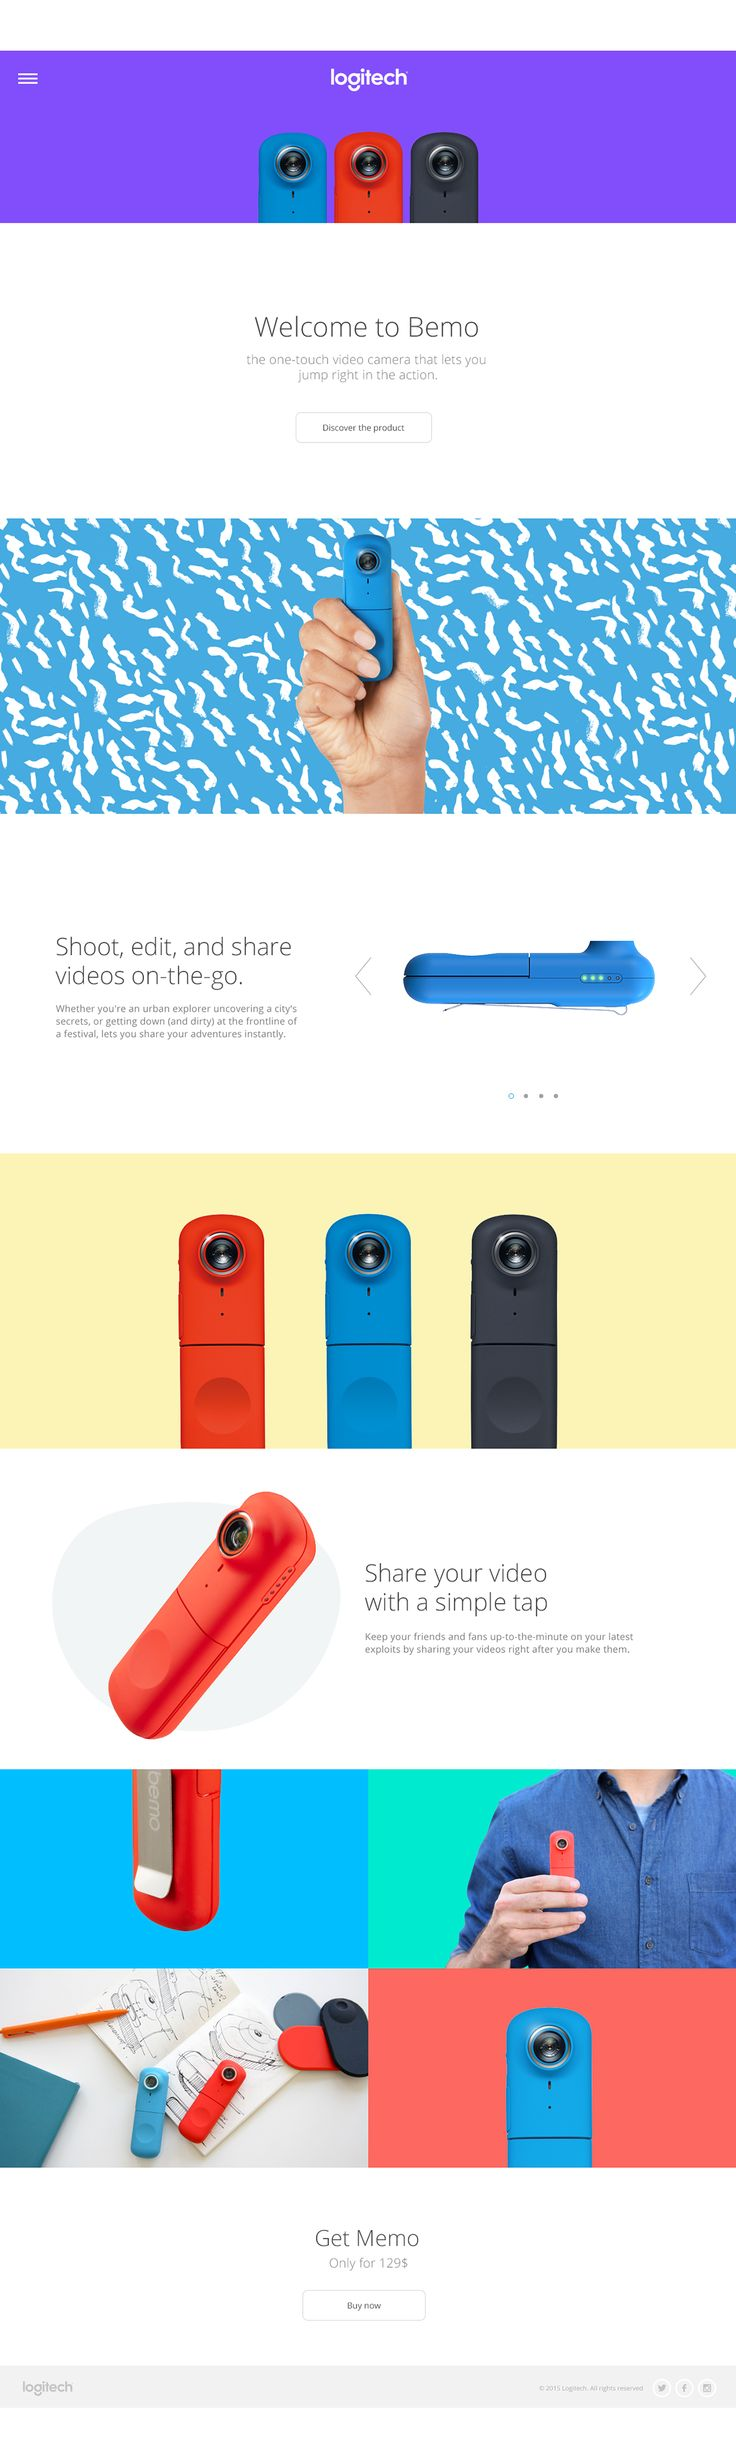 Logitech Site Design | Abduzeedo Design Inspiration